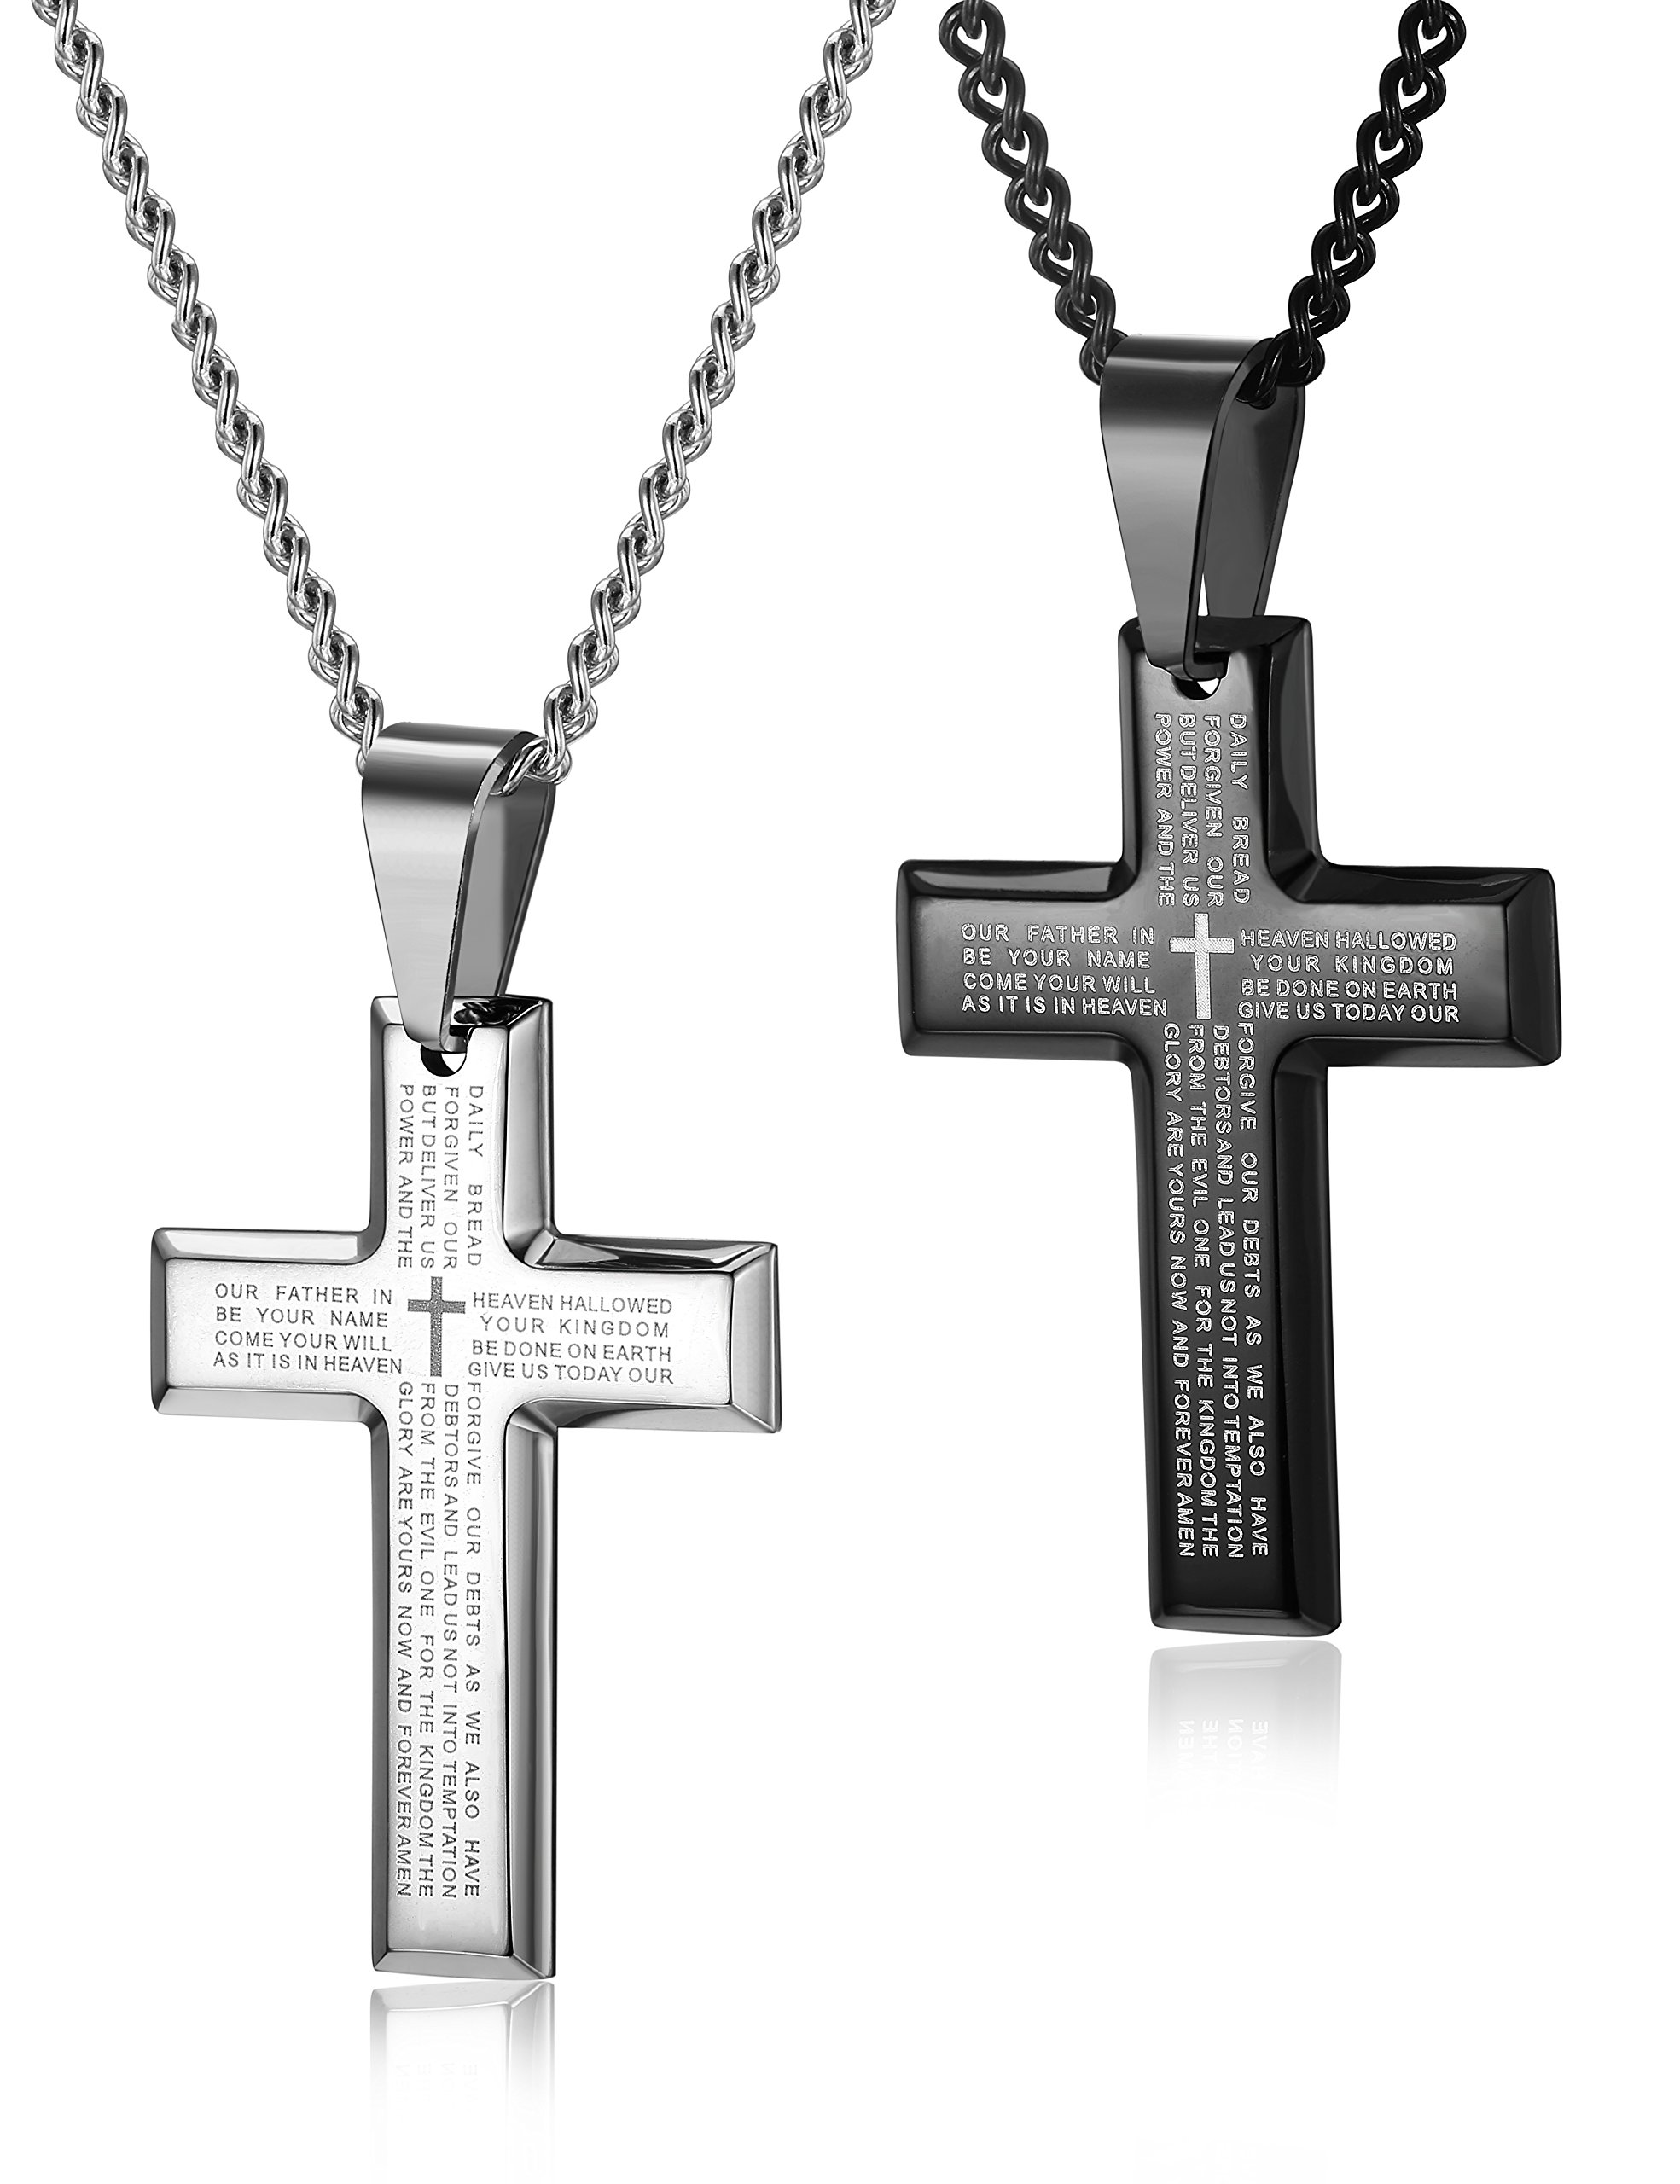 LOYALLOOK 2pcs Men's Stainless Steel Silver Black Tone Cross Pendant Lord's Prayer Necklace 24 Inch